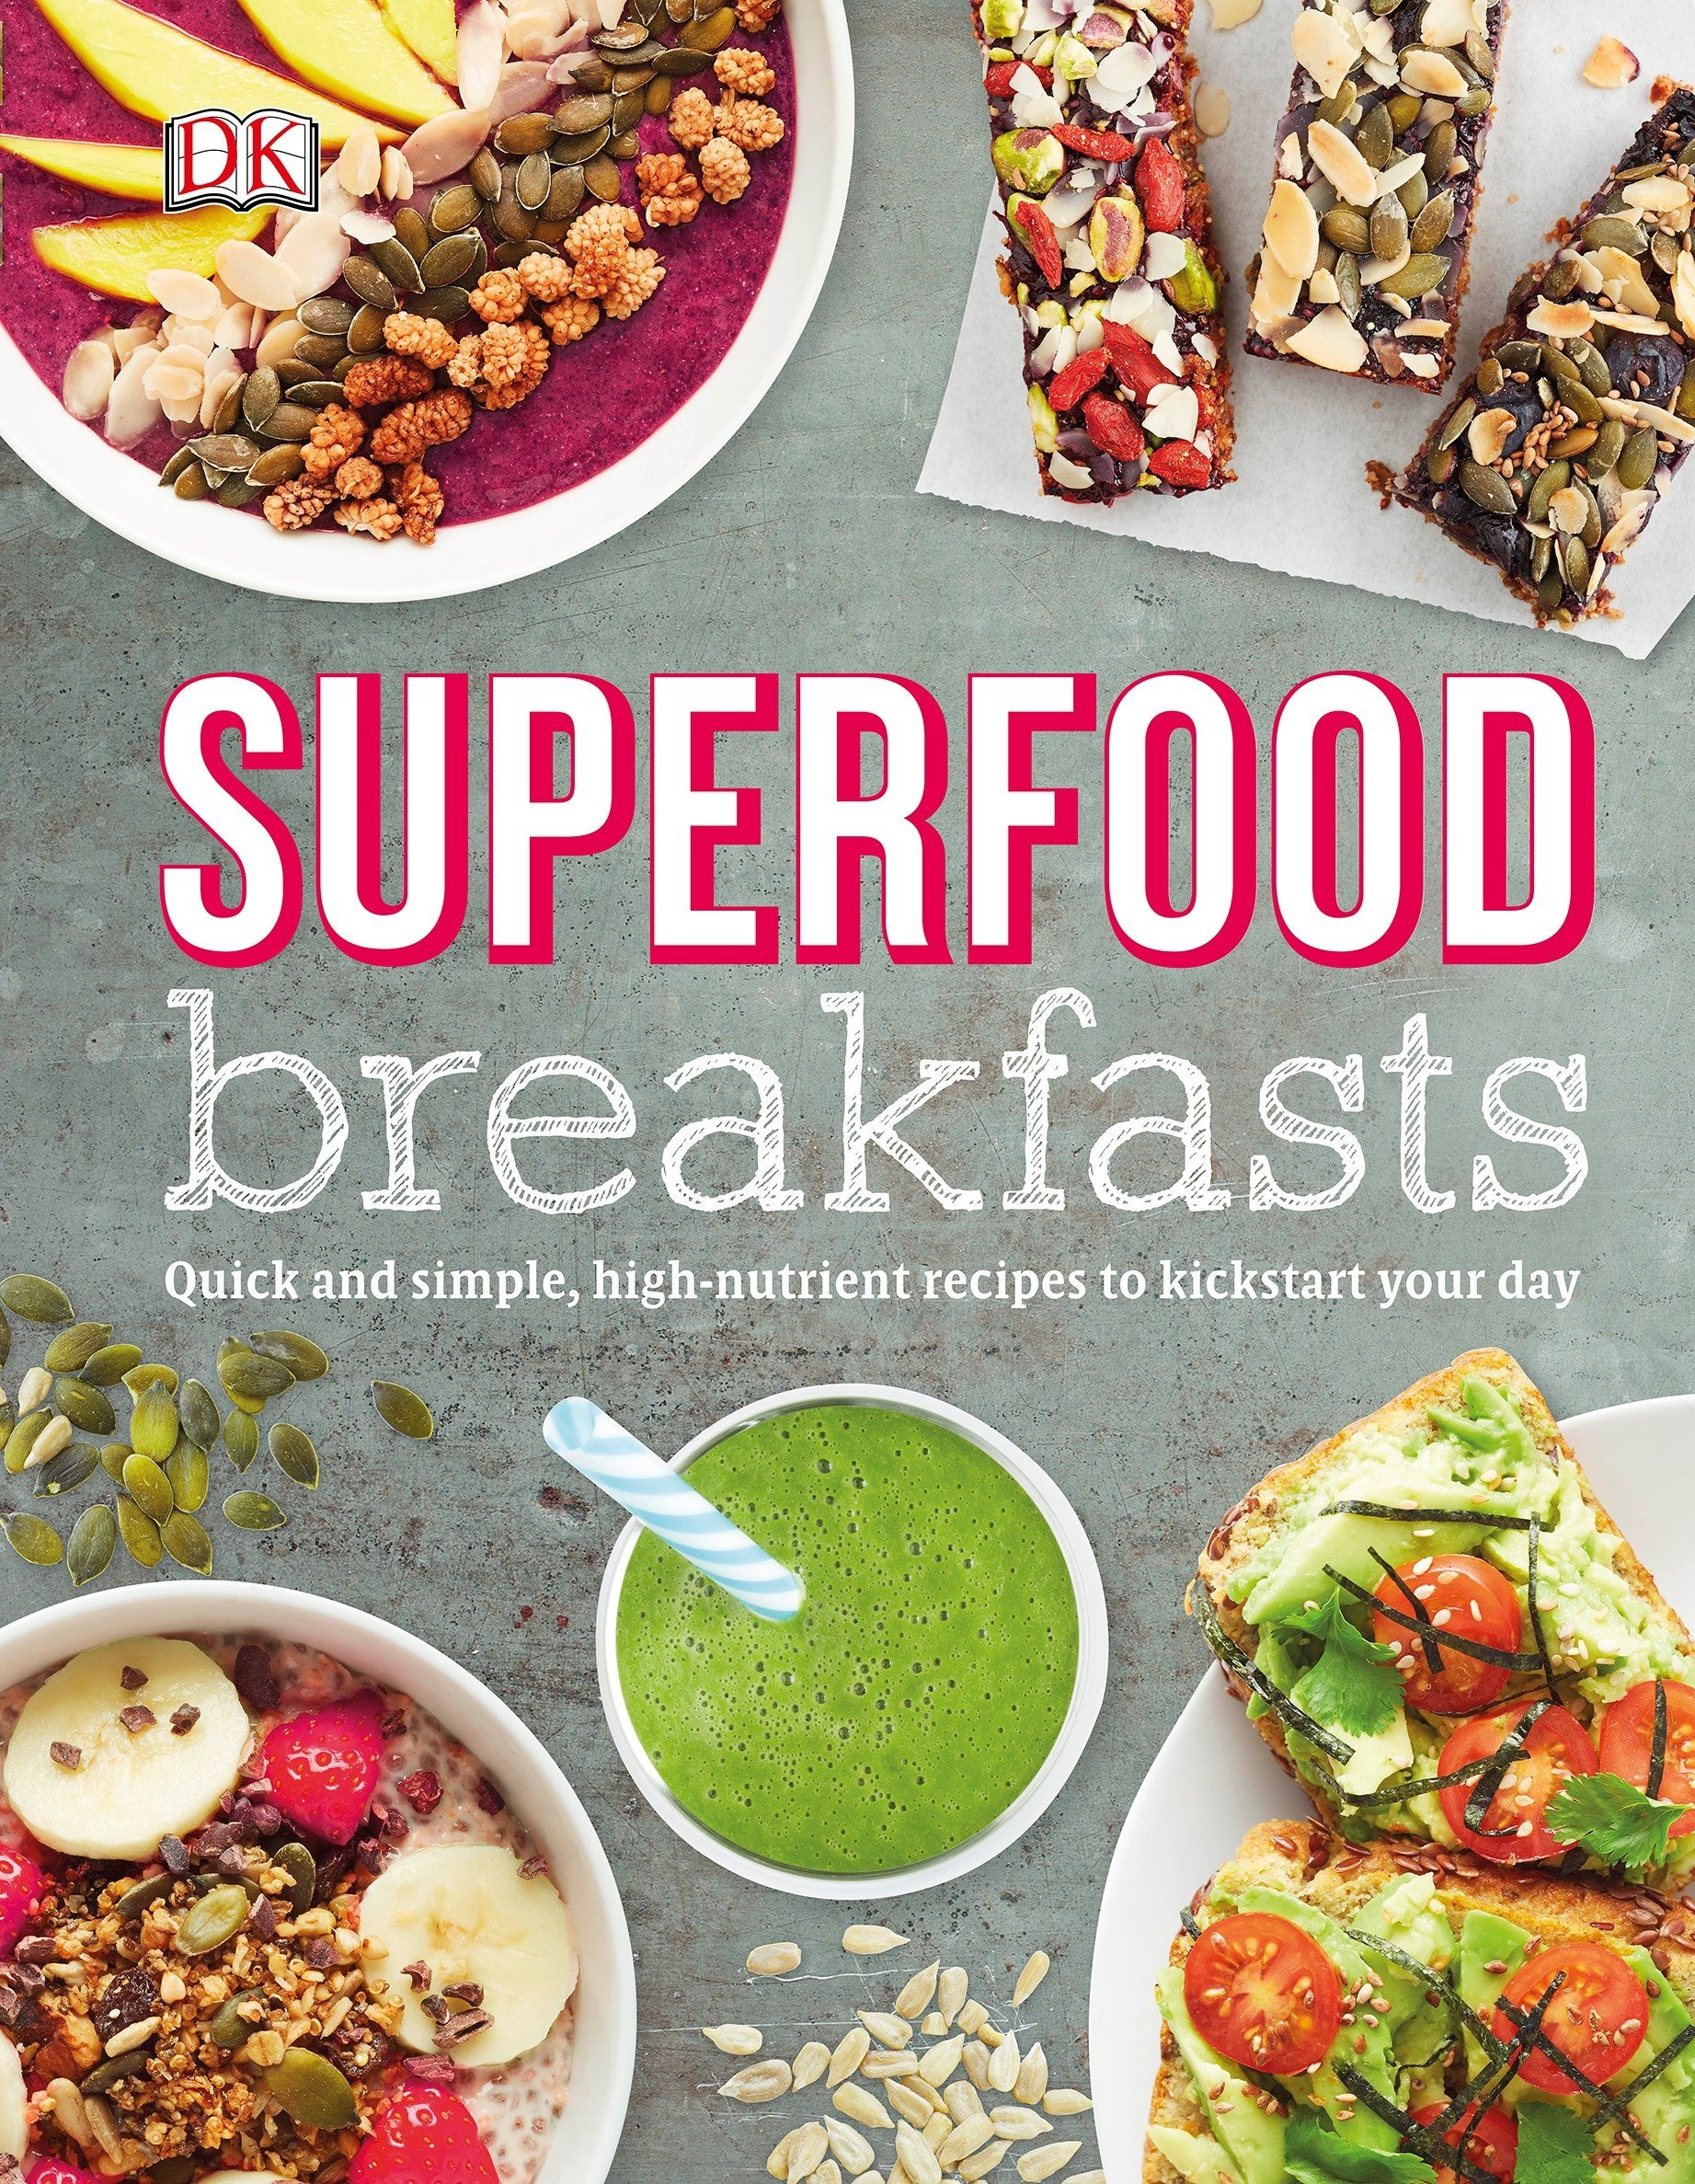 Download Superfood Breakfasts: Quick and Simple, High-Nutrient Recipes to Kickstart Your Day pdf epub